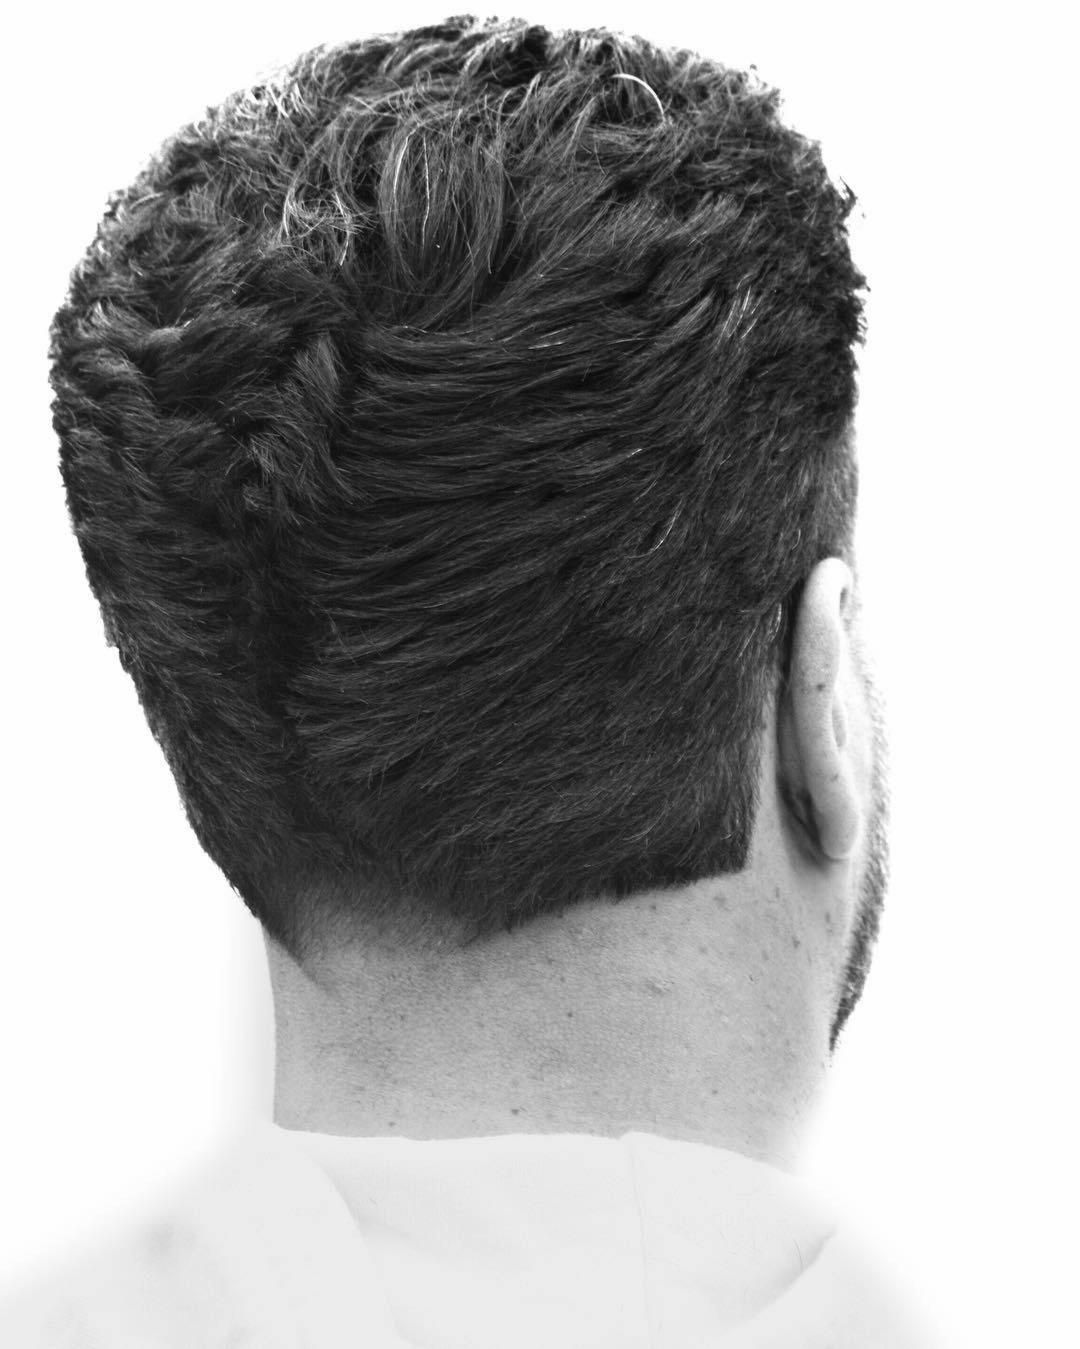 2018 haircuts for men new haircuts for men  la forme de la nuque  pose  pinterest